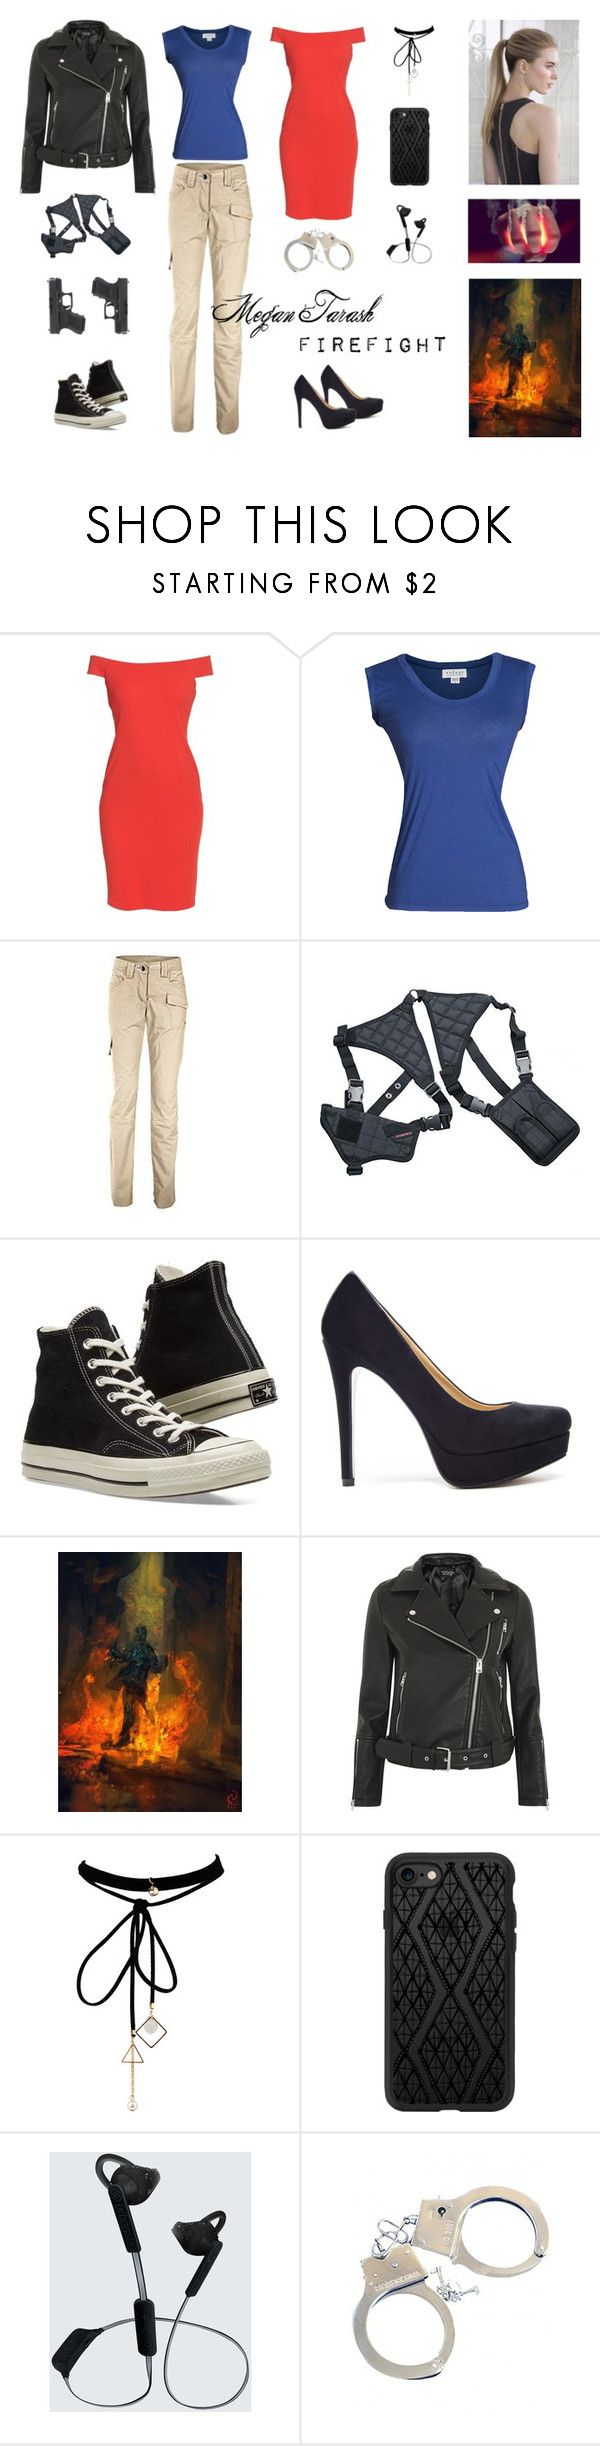 """The Reckoners Style: Megan Tarash / Firefight"" by estrellesdpaper ❤ liked on Polyvore featuring Eliza J, Velvet by Graham & Spencer, Universal, Converse, Chinese Laundry, Topshop, WithChic, Casetify, Urbanista and reckoners"